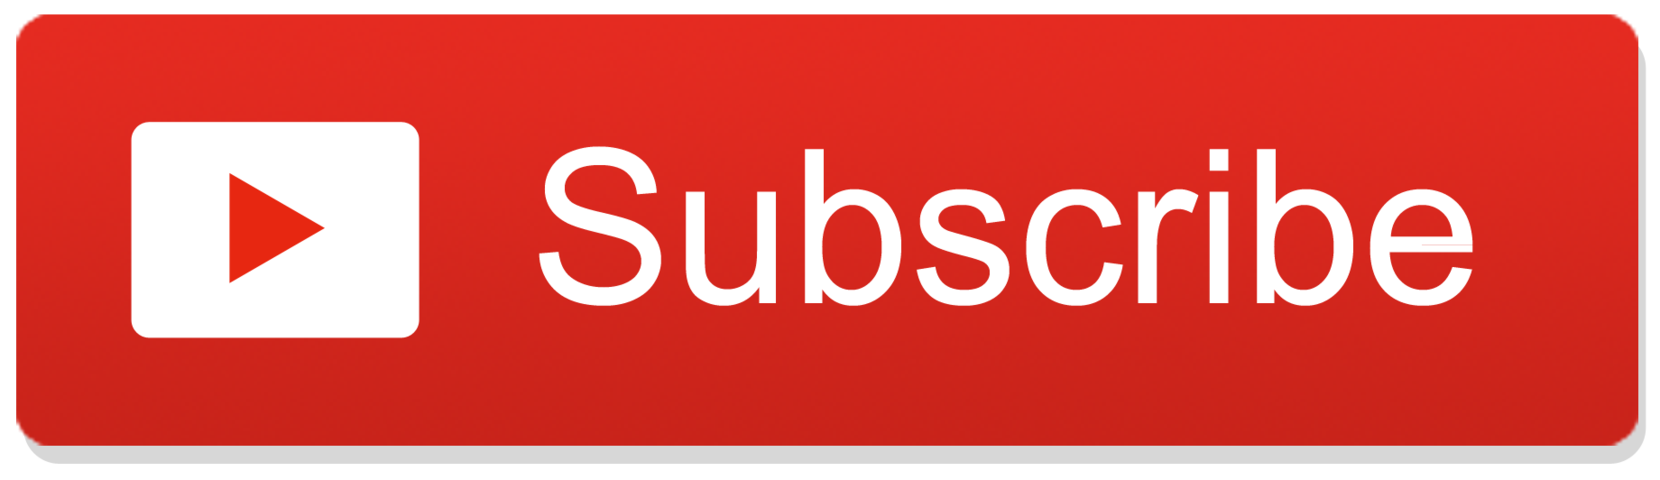 Youtube Subscribe Button  2014  By Just Browsiing On Deviantart